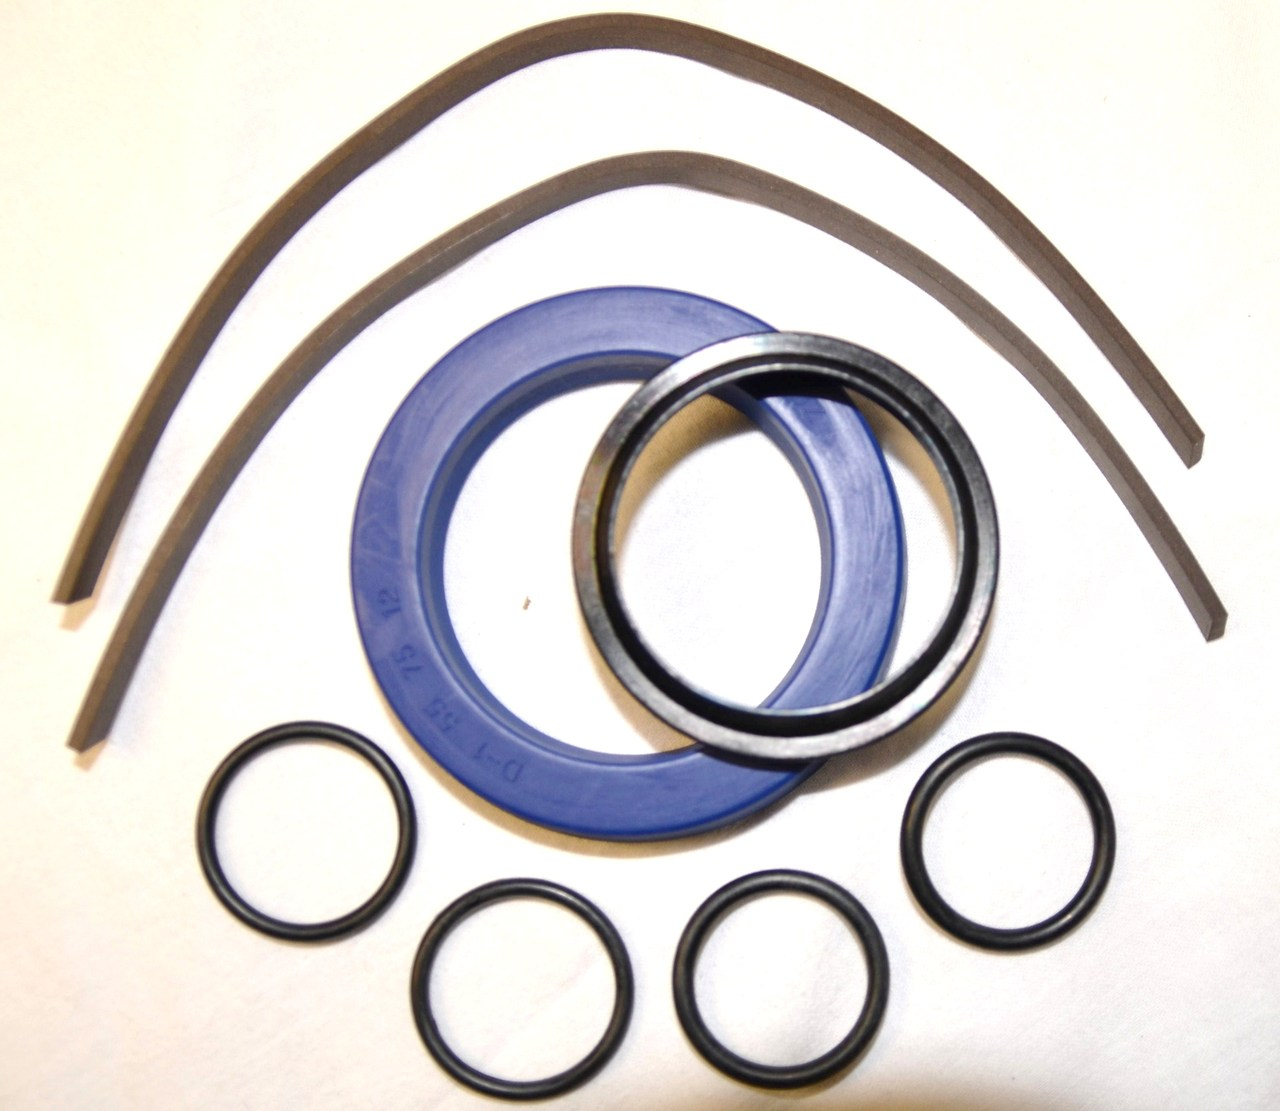 YG31-9180 Cylinder Seal Kit for 2 Post Lifts